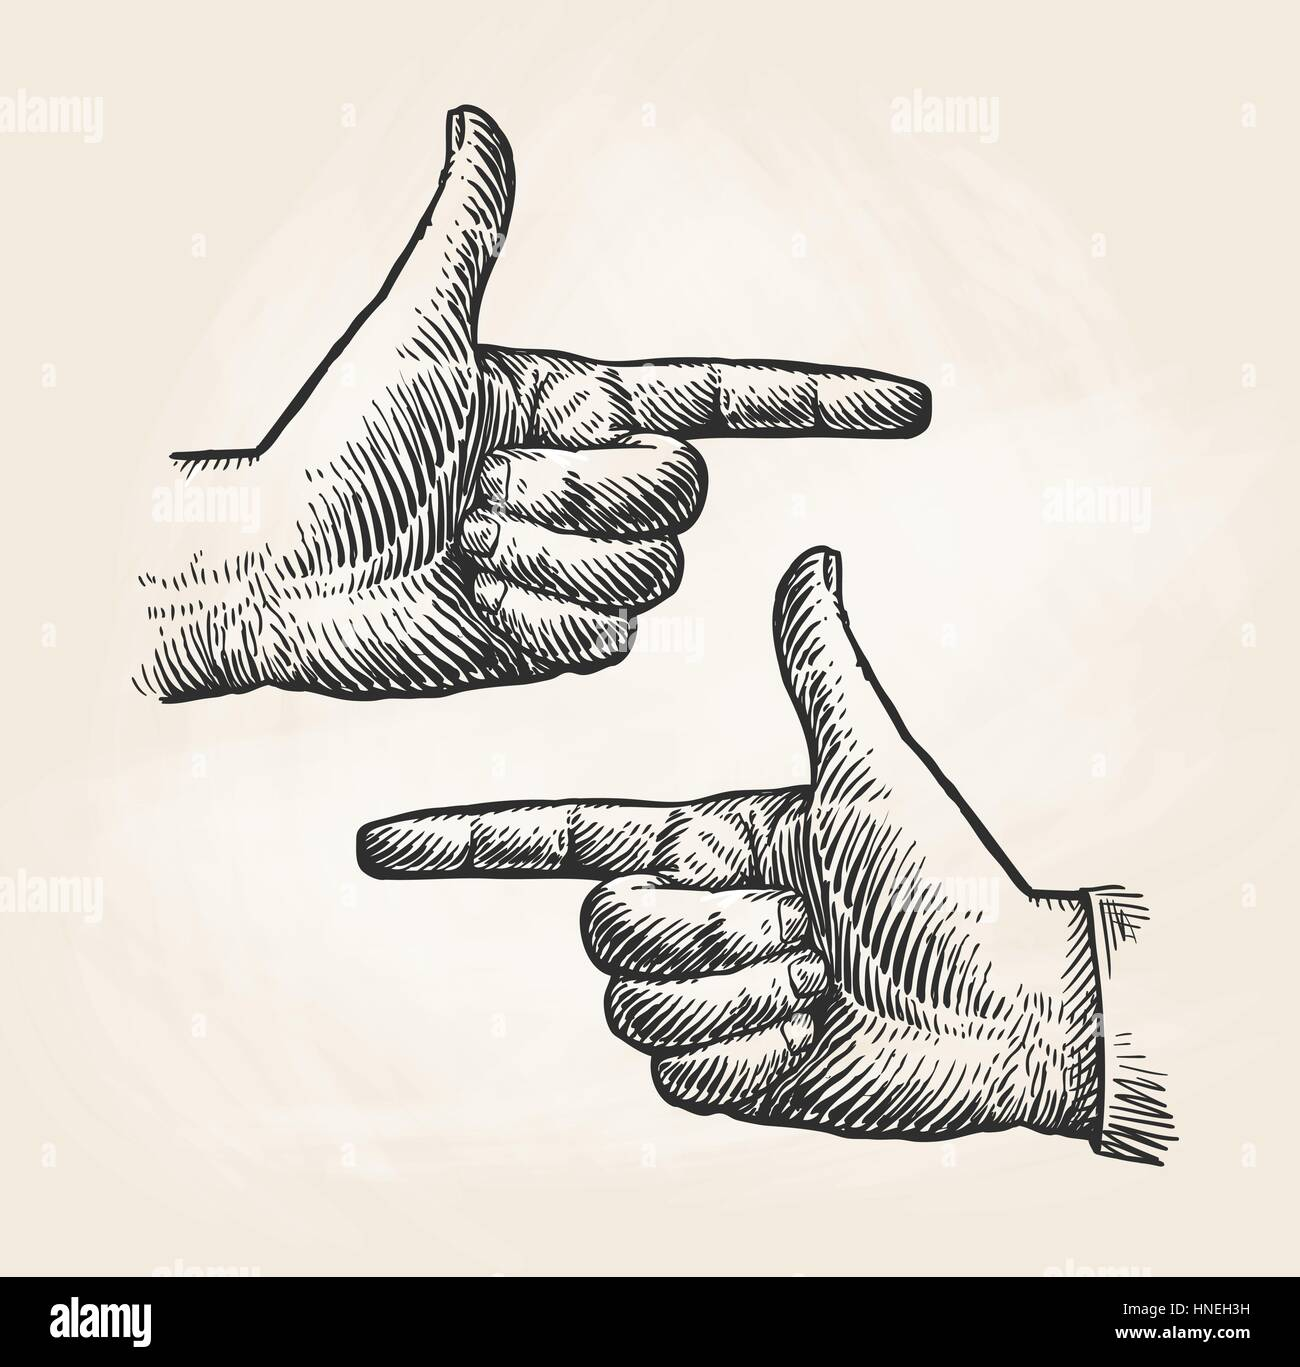 vintage pointing hand drawing forefinger index finger sketch stock vector image art alamy https www alamy com stock photo vintage pointing hand drawing forefinger index finger sketch vector 133701109 html